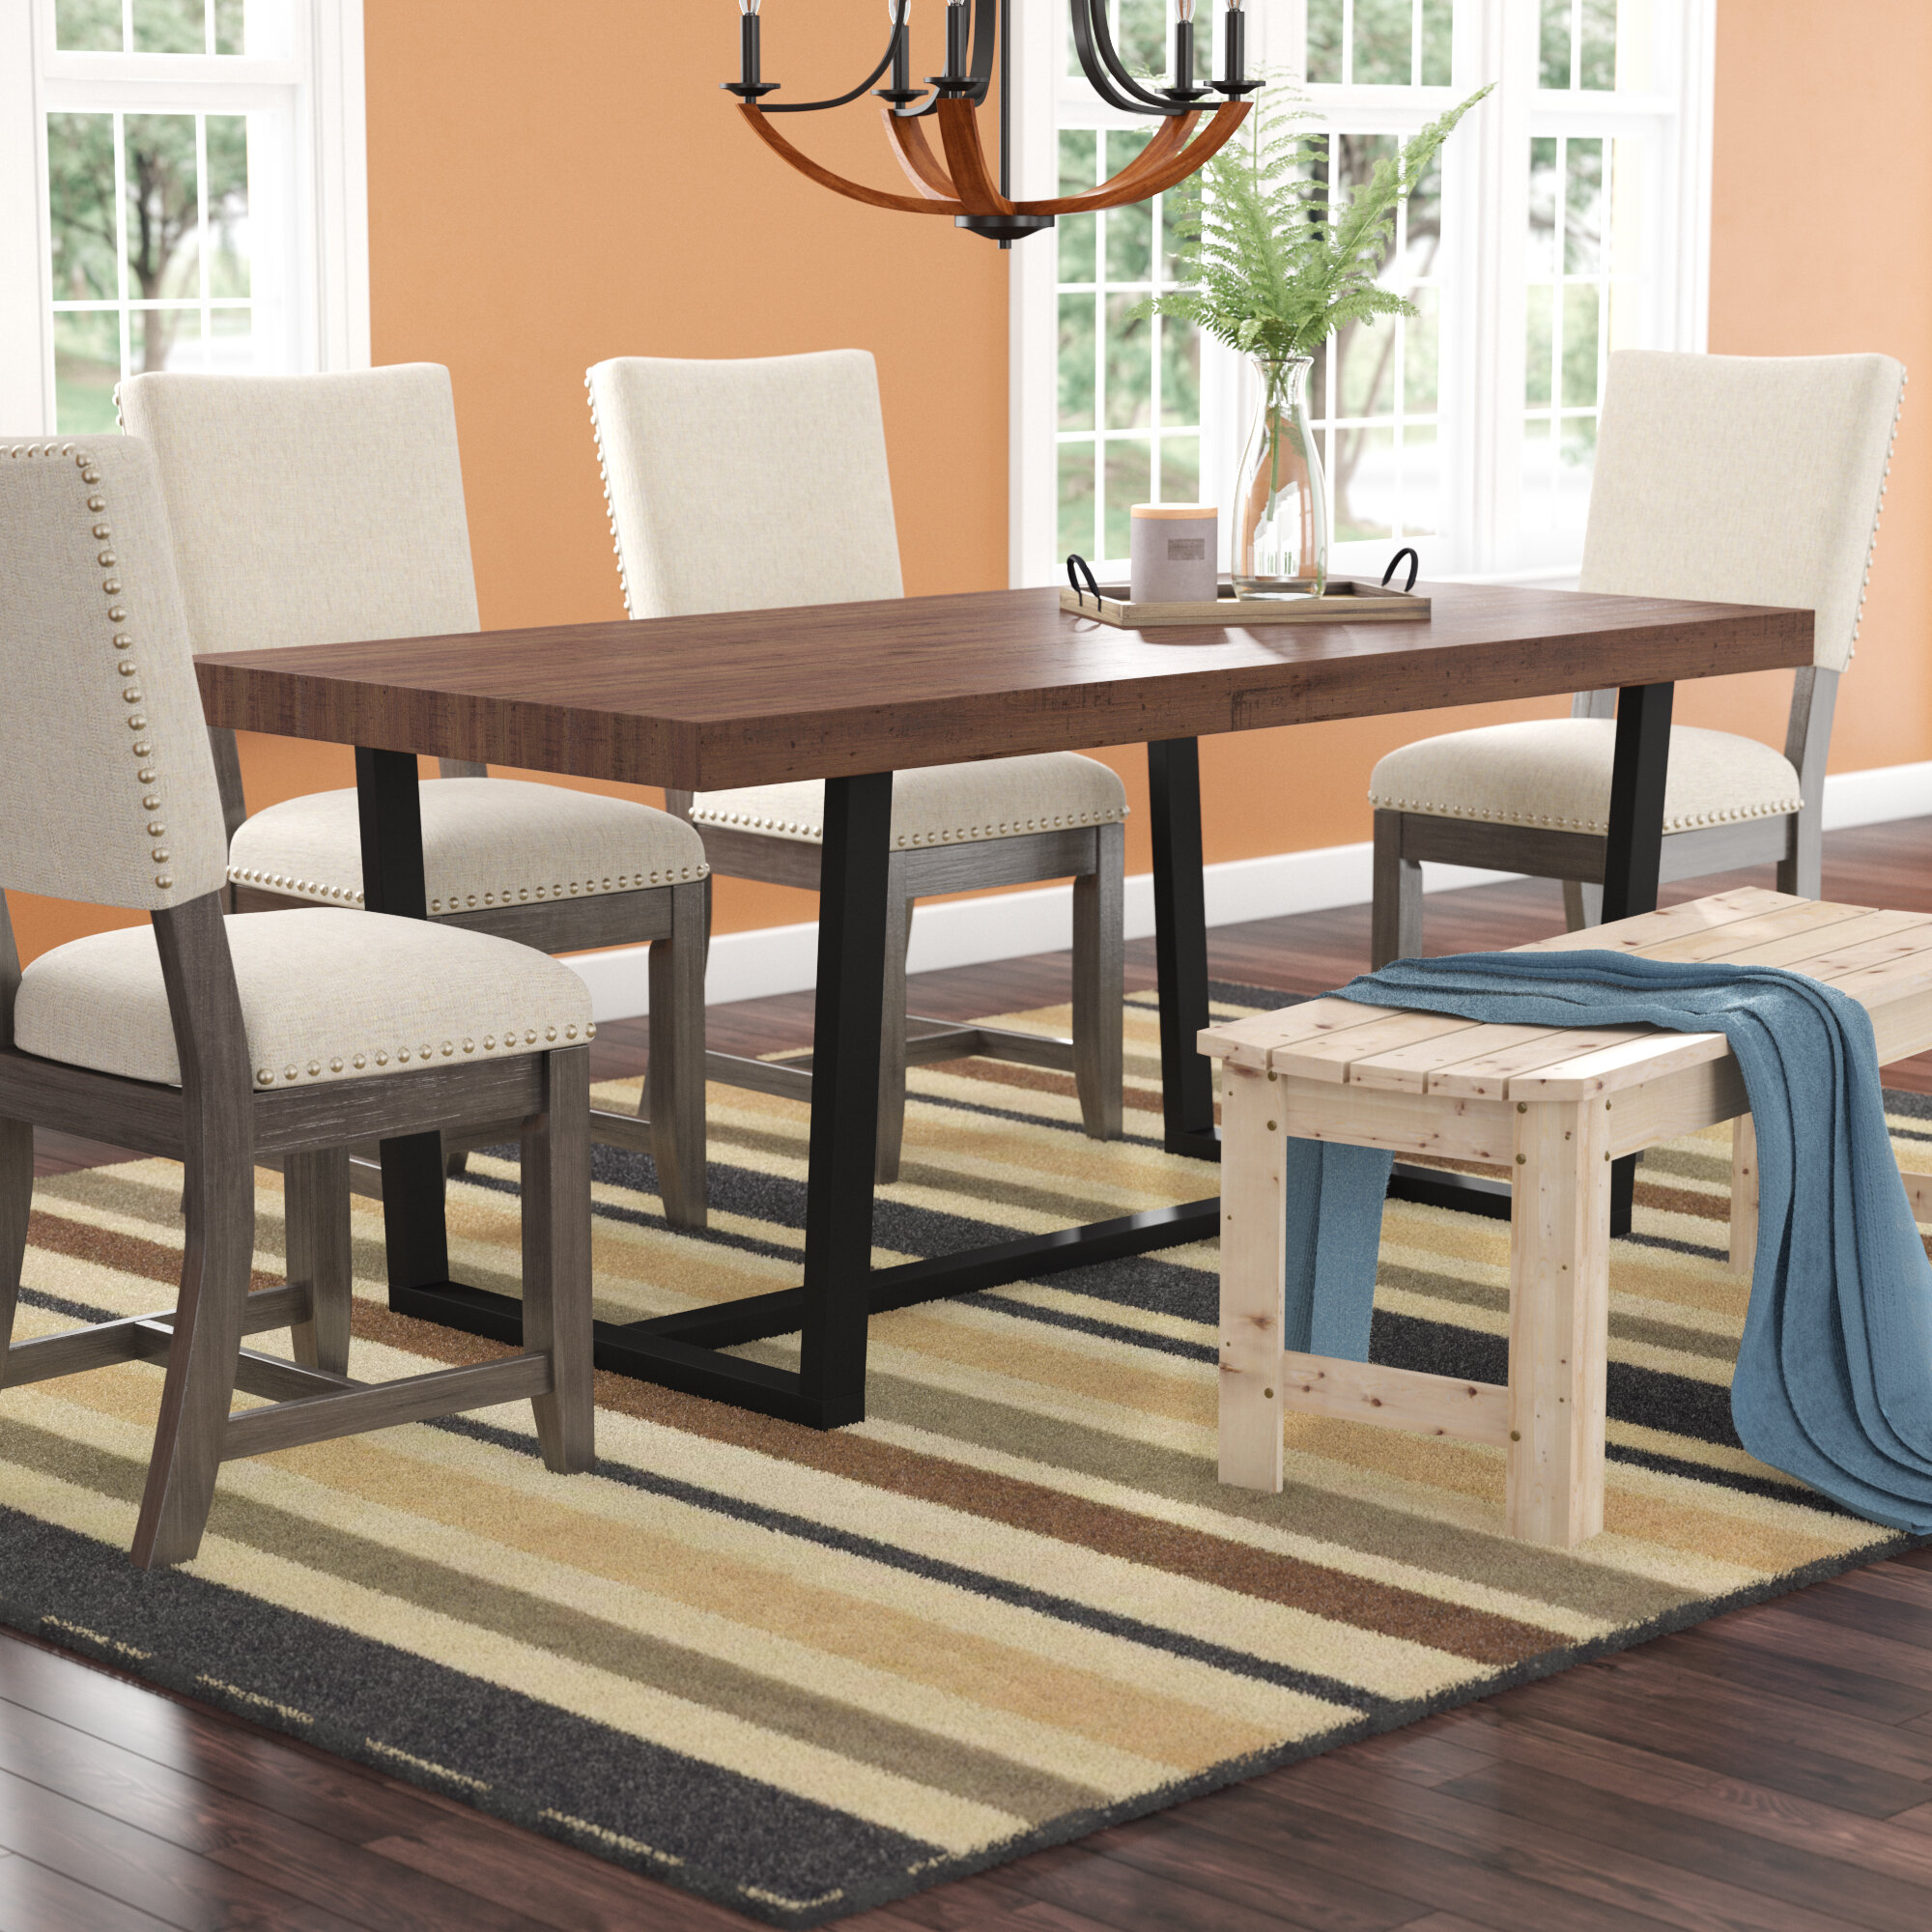 Picture of: Rectangular Small Kitchen Dining Tables Rectangles You Ll Love In 2020